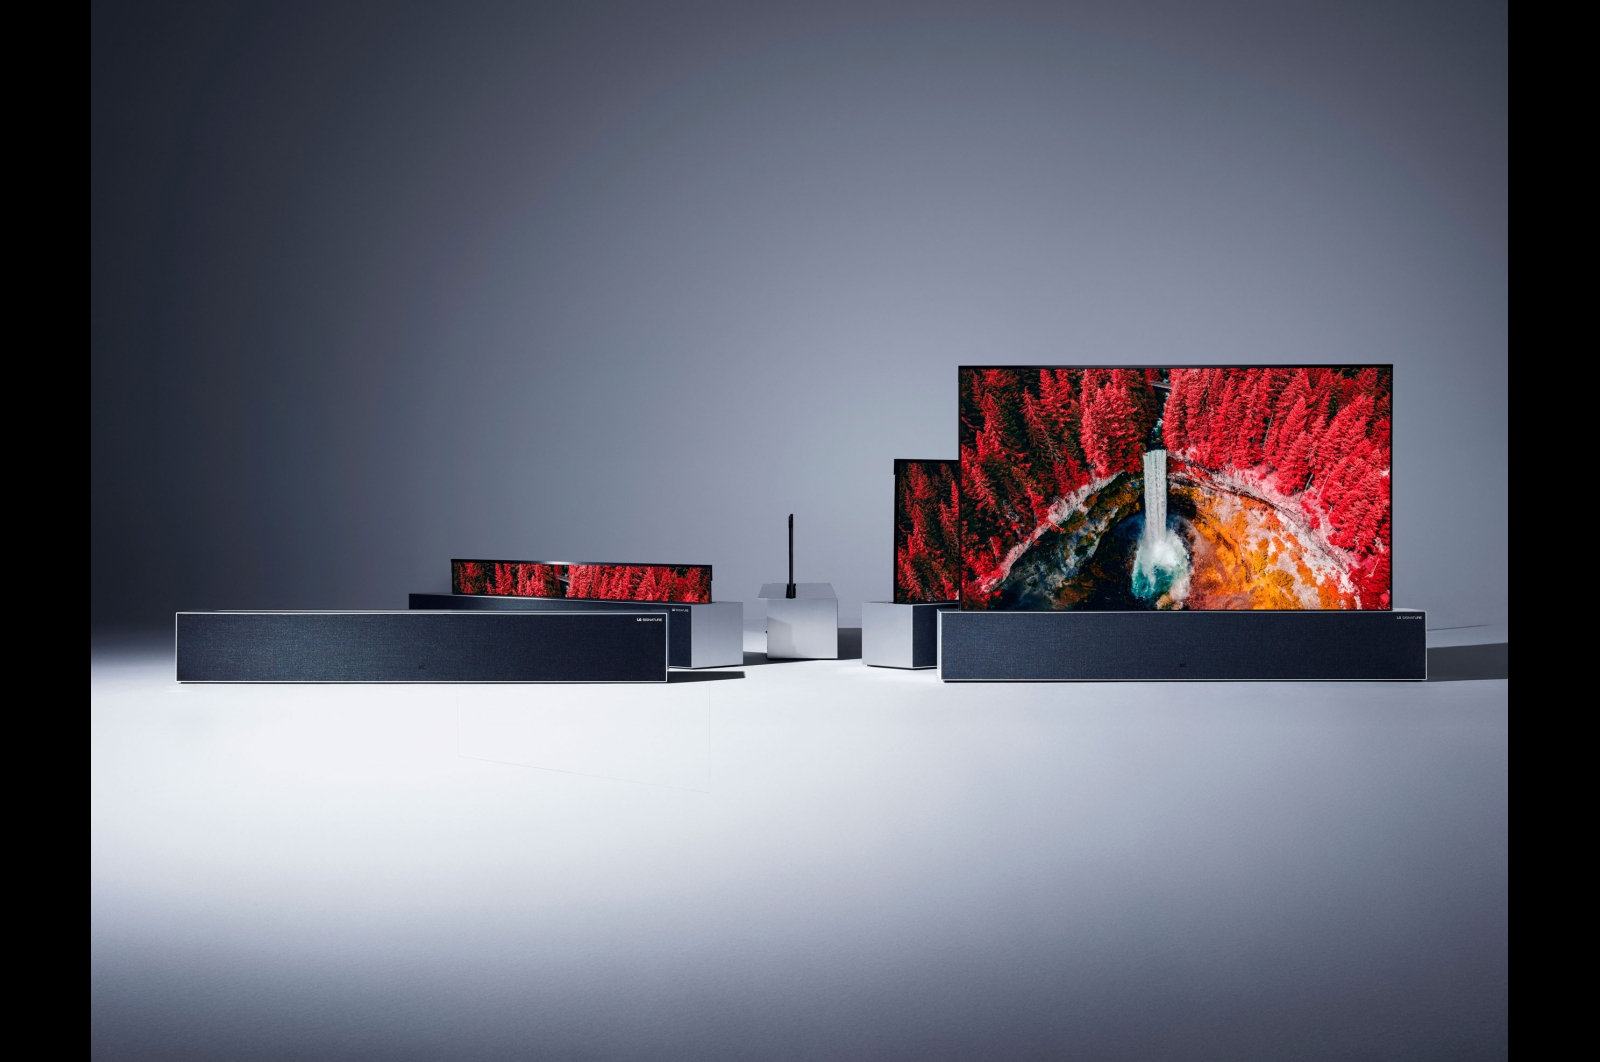 lg rollable oled tv lineup 2019